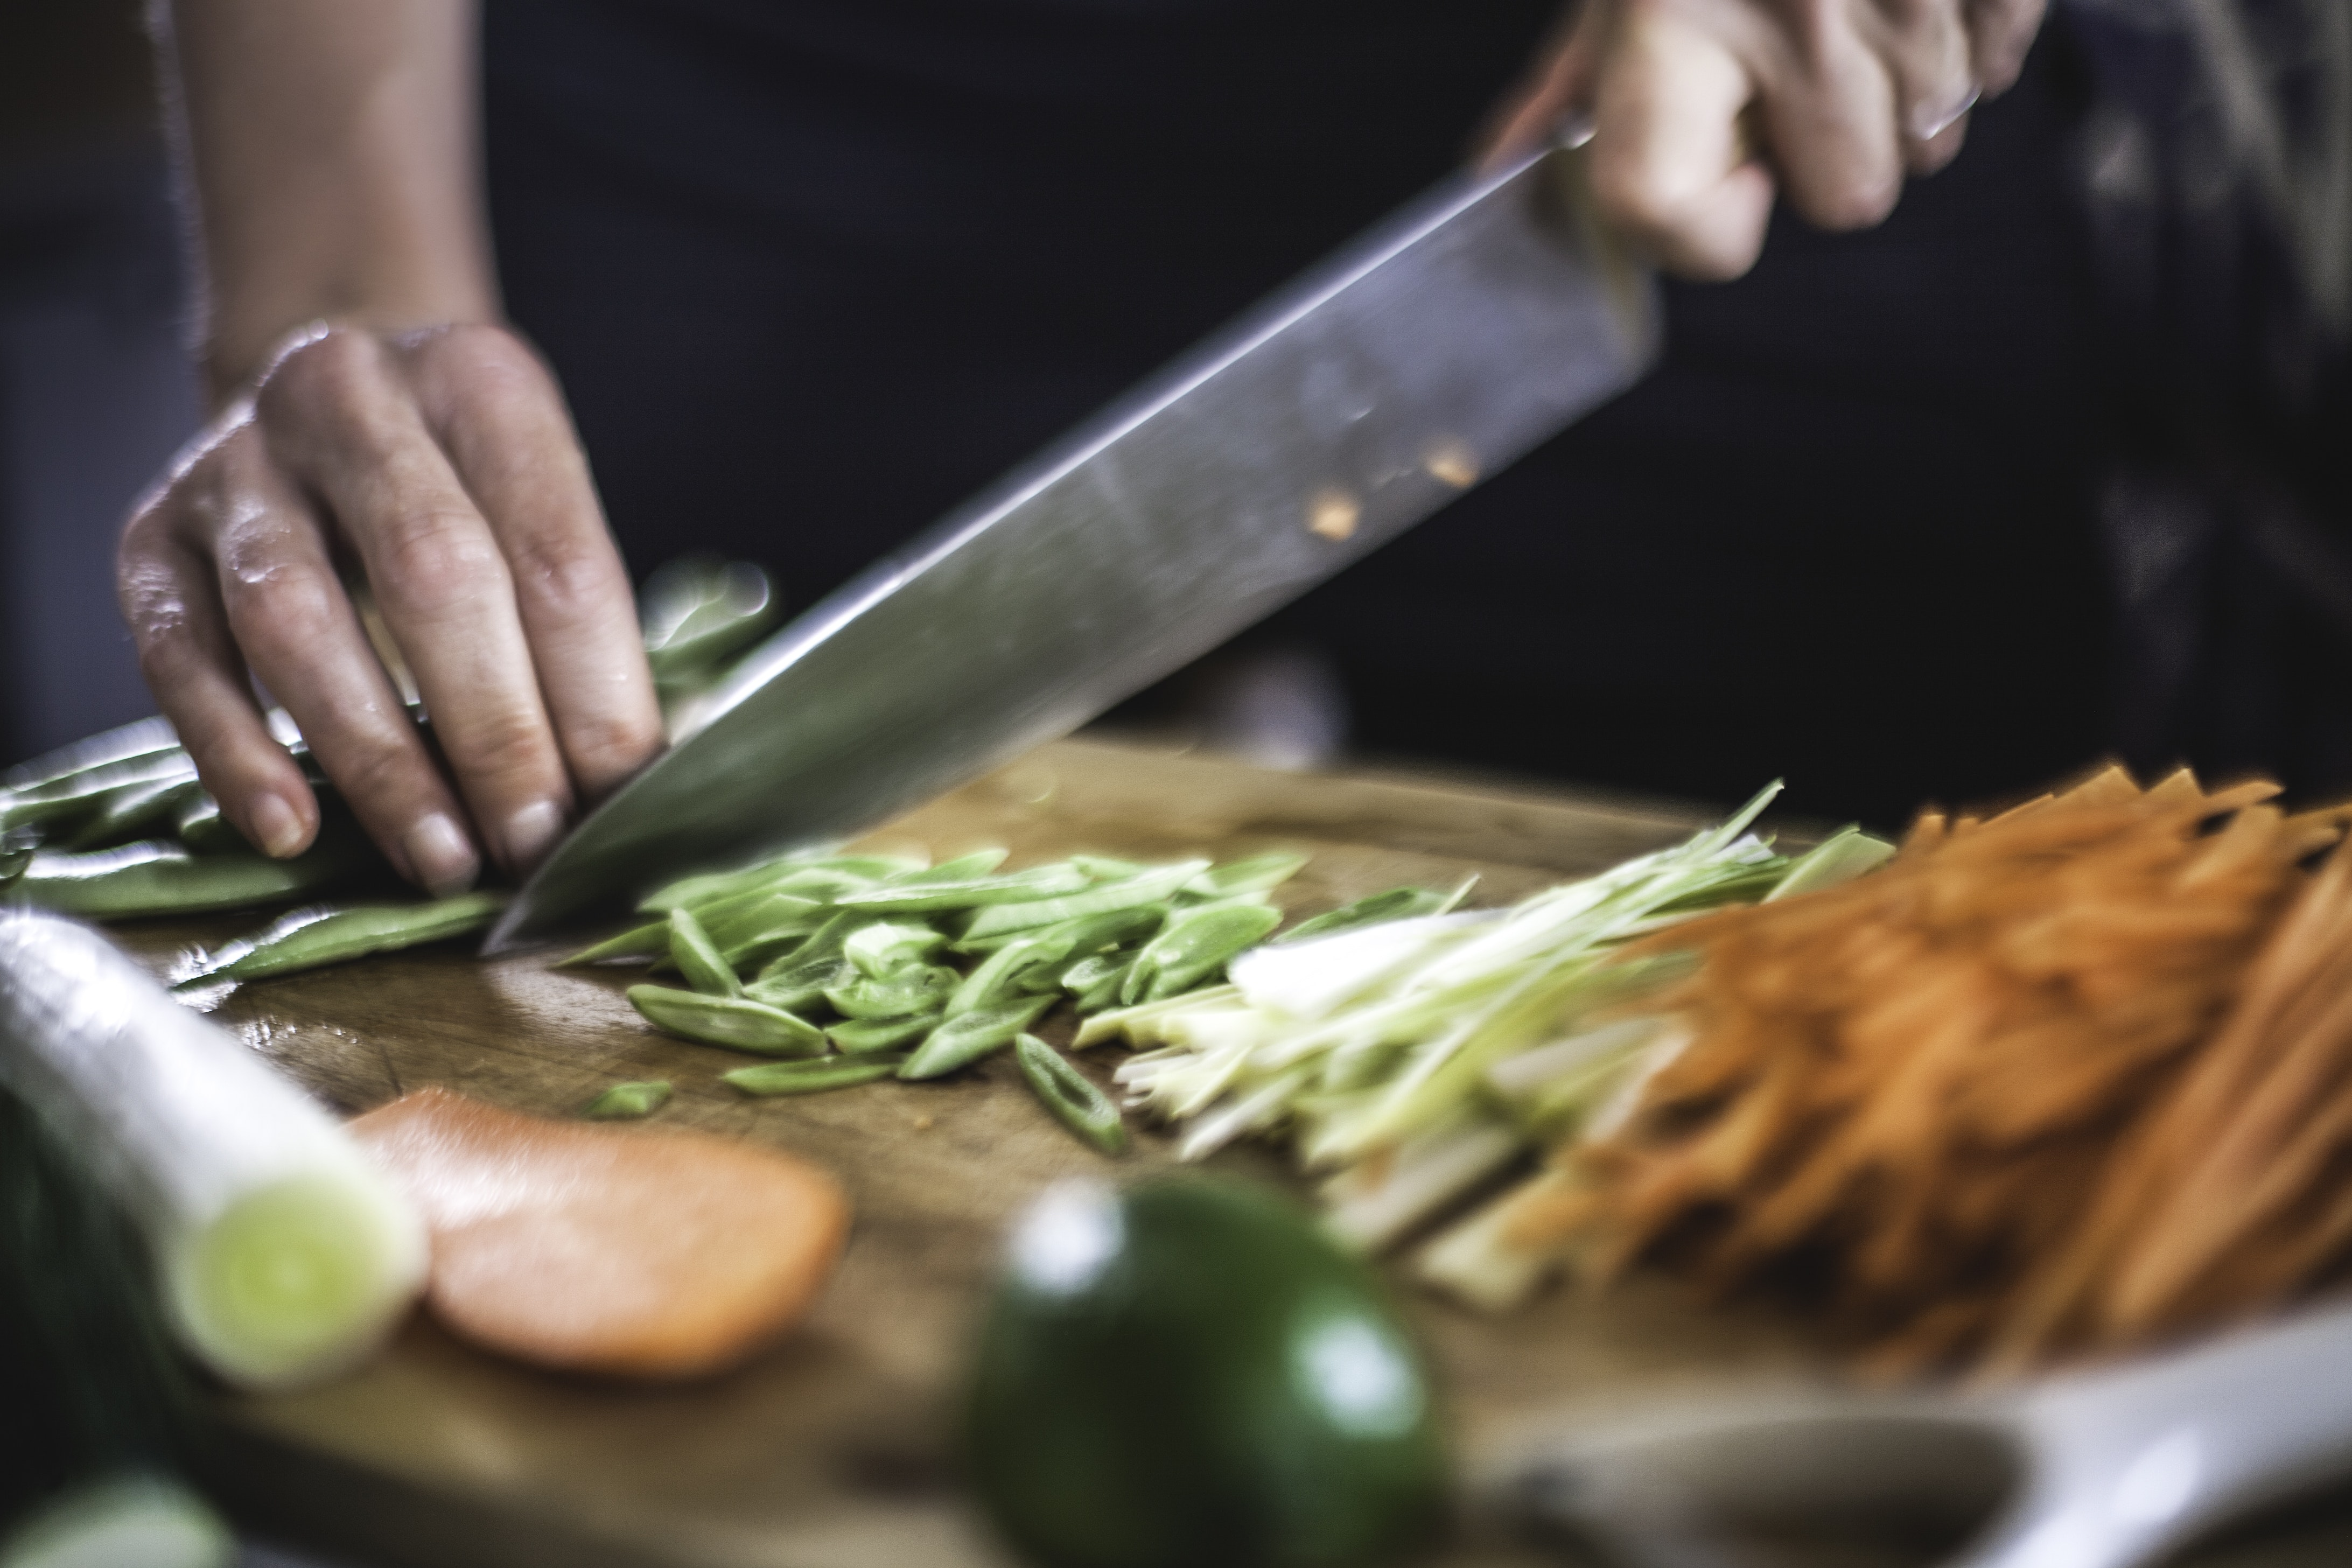 A cook cutting vegetables on a cutting board.